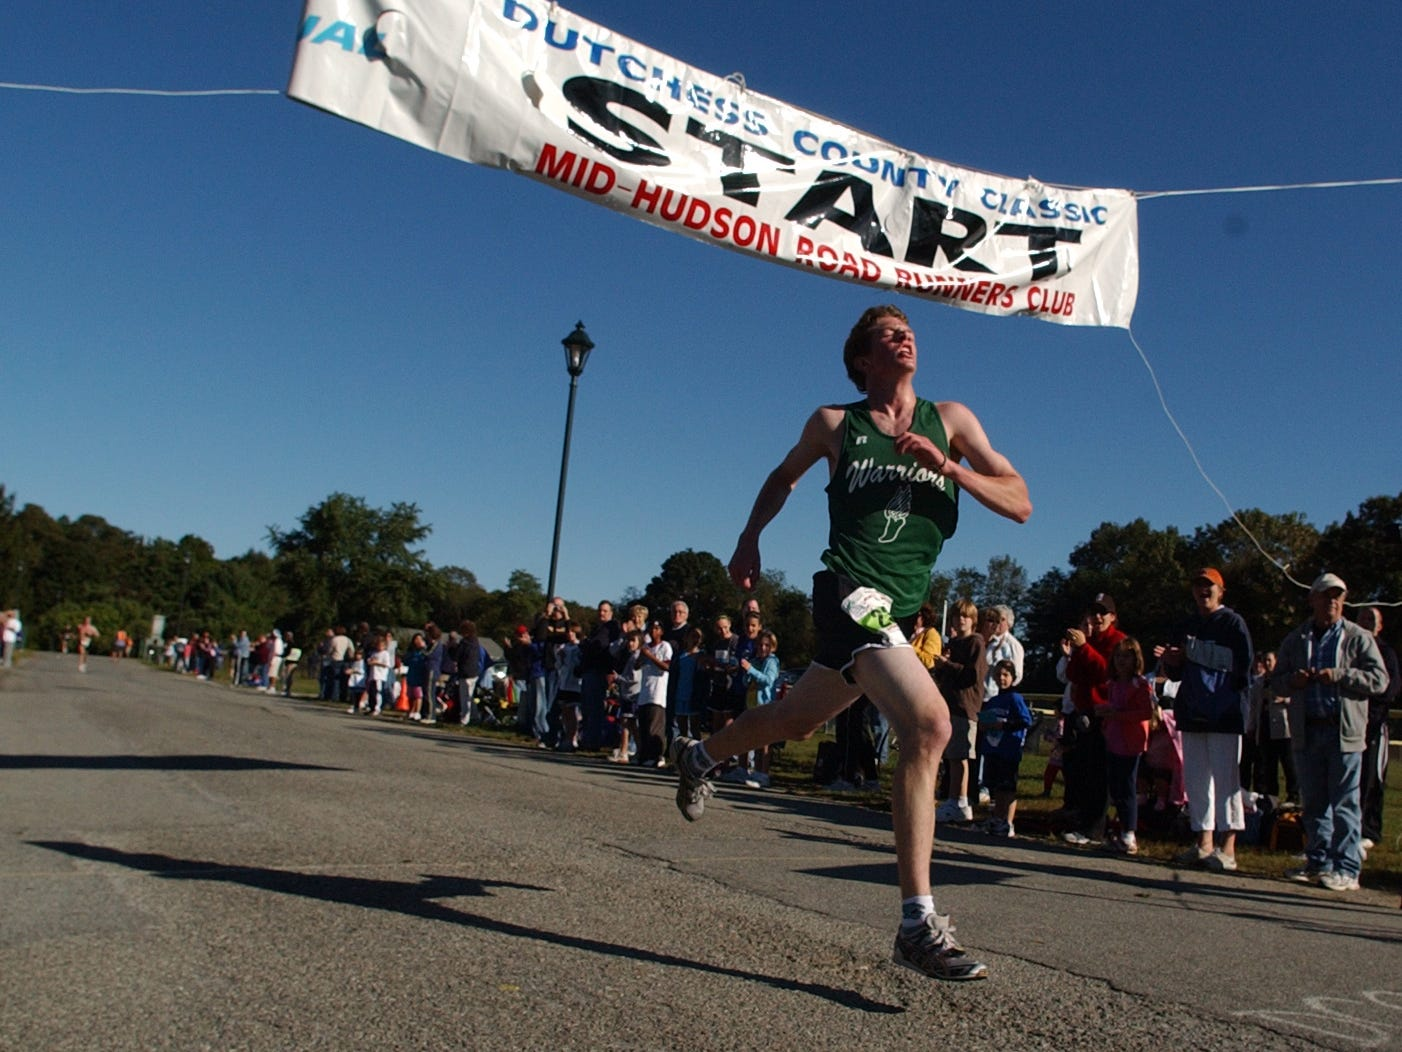 James Boeding, 17, of Millerton, wins the Dutchess County Classic 5-kilometer race Sunday, Sept. 20, 2009, at the Town of Wappinger Recreation Complex on Robinson Lane in the Town of Wappinger.